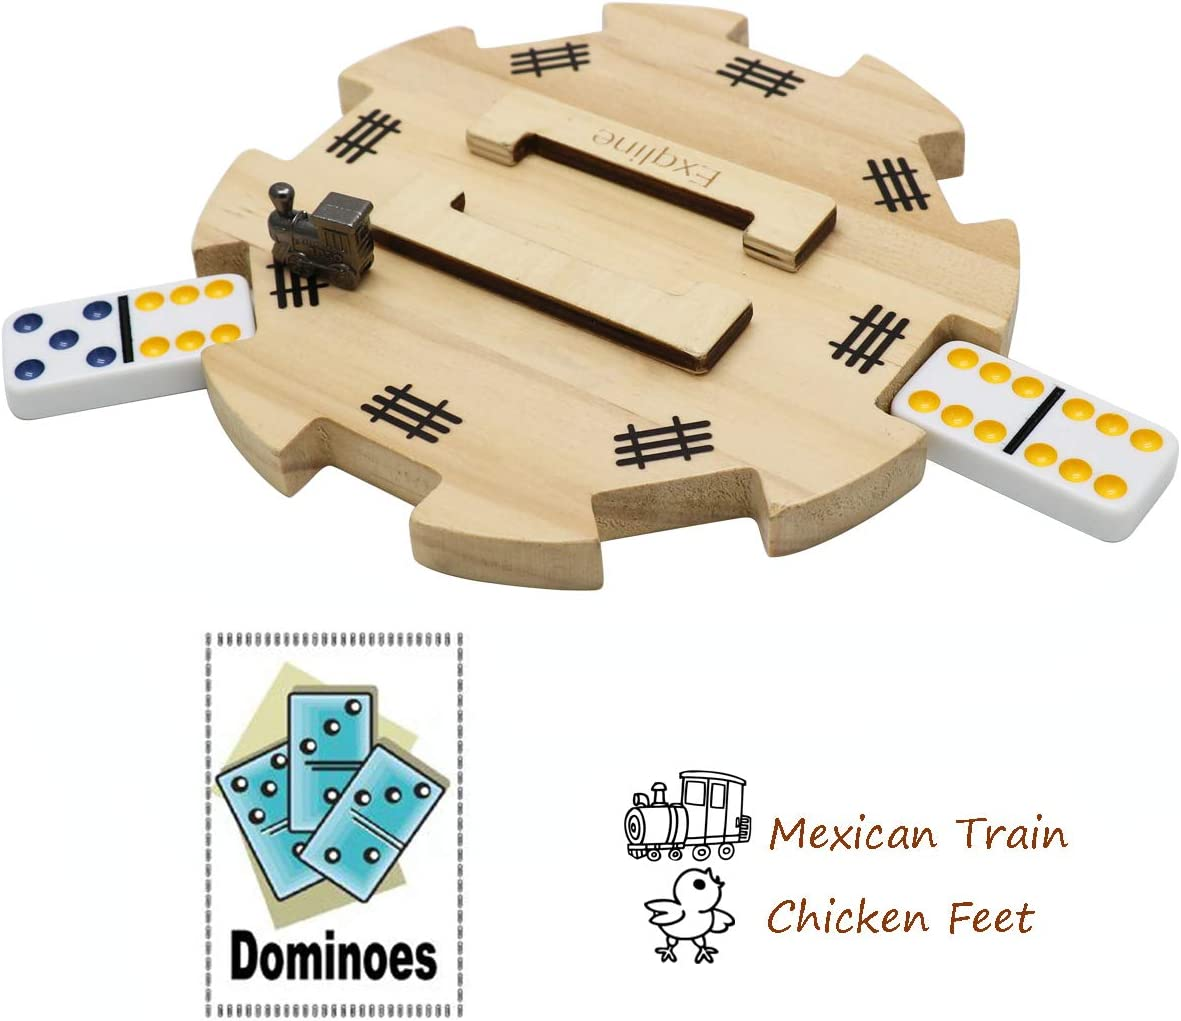 Exqline Wooden Hub Domino Centerpiece Train Station for Mexican Train Dominoes Game with Felted Bottom Made of Superior Pine